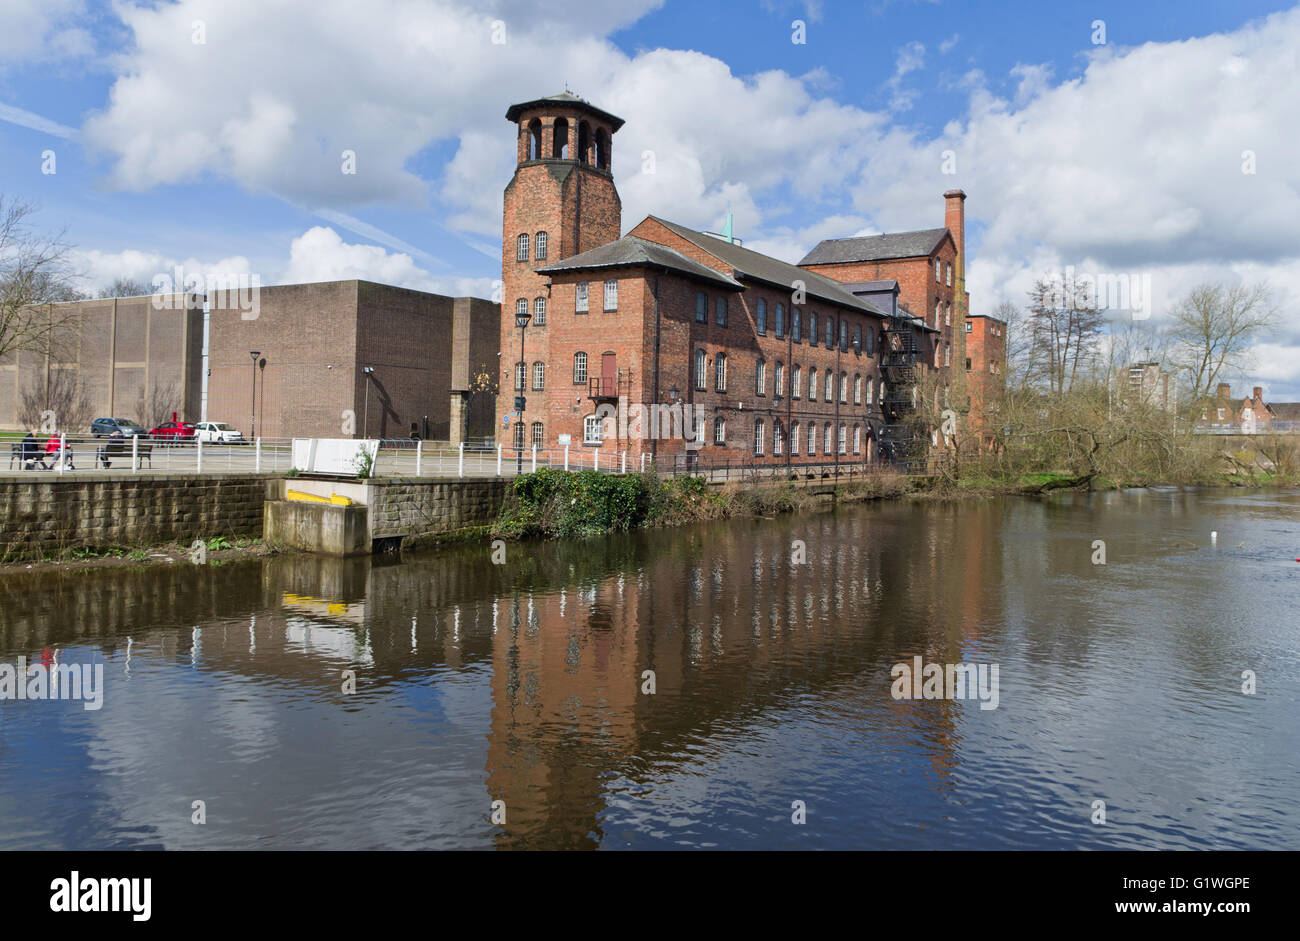 The Silk Mill Museum on the banks of the River Derwent in the city of Derby. - Stock Image